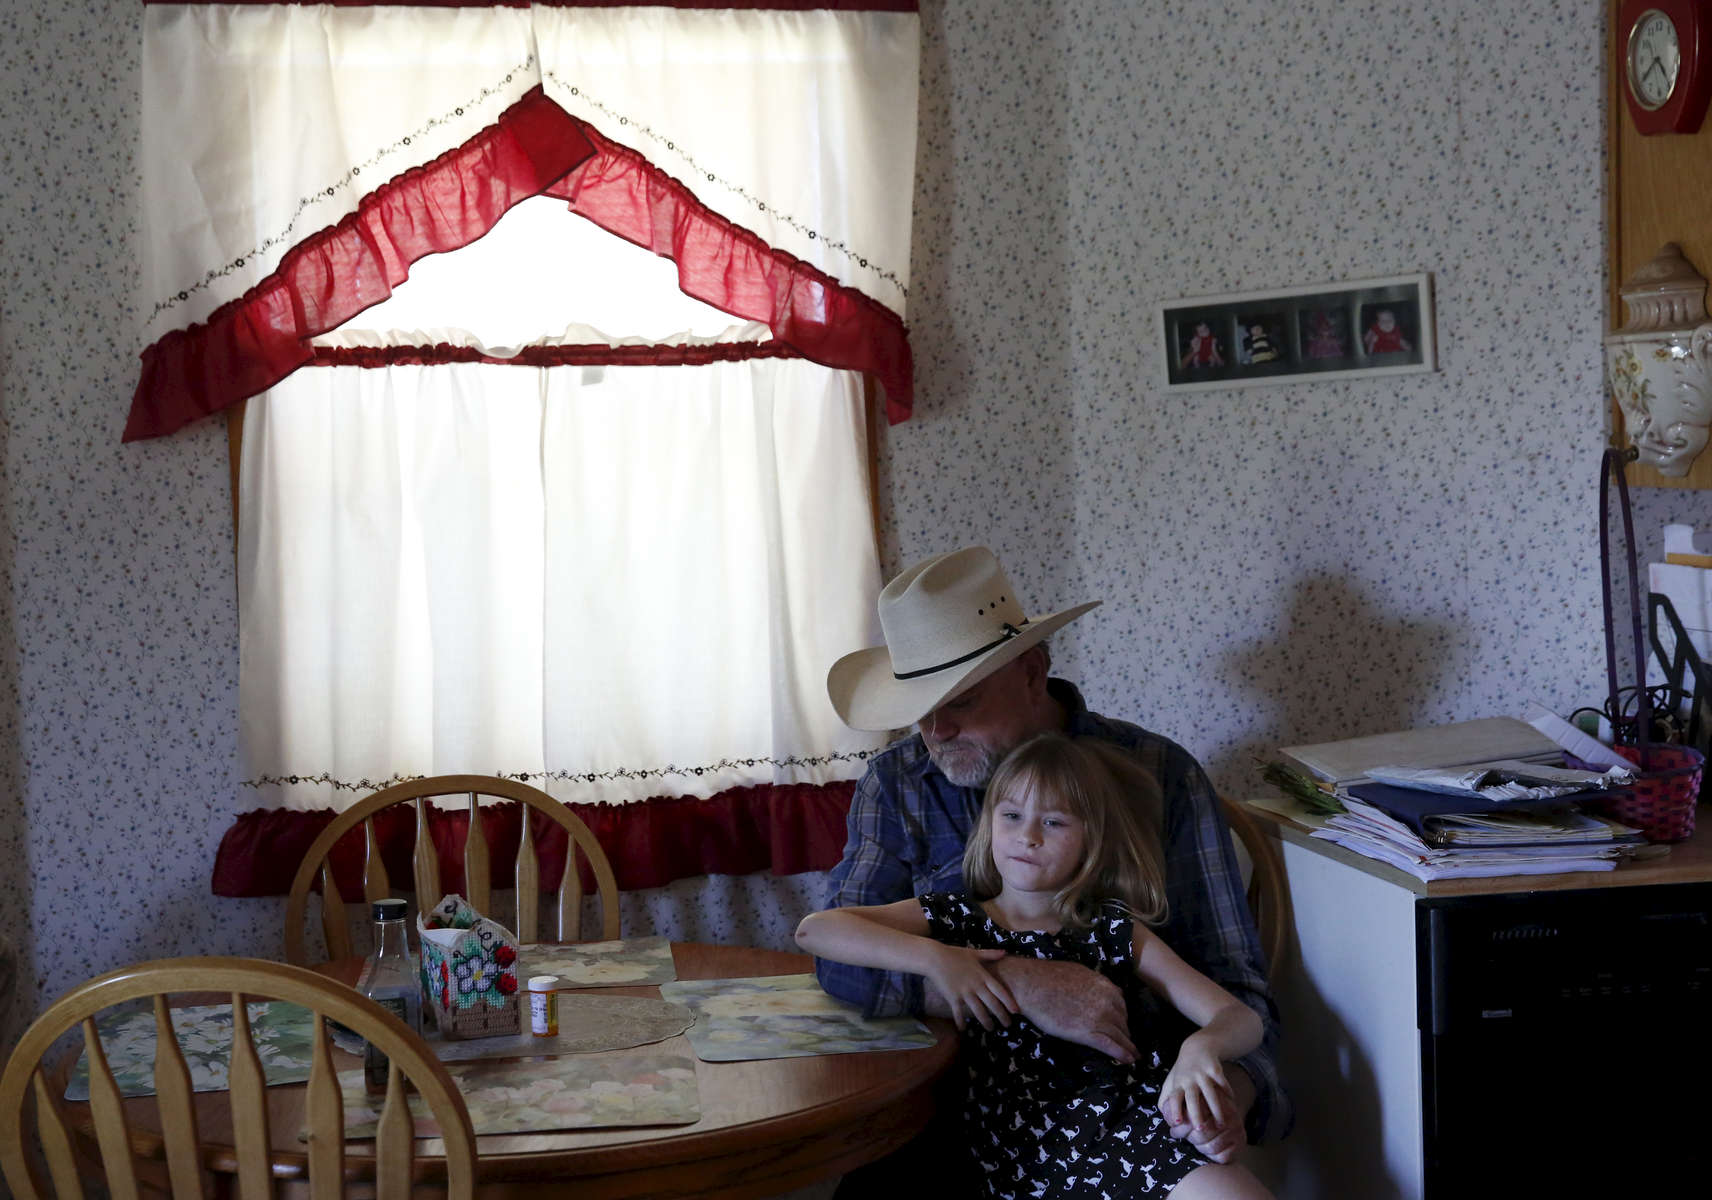 "Dennis Baker, 53, hangs out with his granddaughter Kaylie Baker, 6, before a delayed Father's Day dinner for him June 23, 2015 at his home, situated on his farmland in Tracy, Calif. Baker, who farms 40 acres of hay, became concerned for his crop after a hearing at the San Joaquin County Superior court between the State Water Board and his water district (the Banta-Carbona Irrigation District) was held to decide whether it is legal for the state to stop water diversions to senior water rights holders like him. If the water stopped flowing to his land, he was worried about losing his crop, or more importantly, losing his ""permanent pasture"" which has been reseeding itself for 50 years."